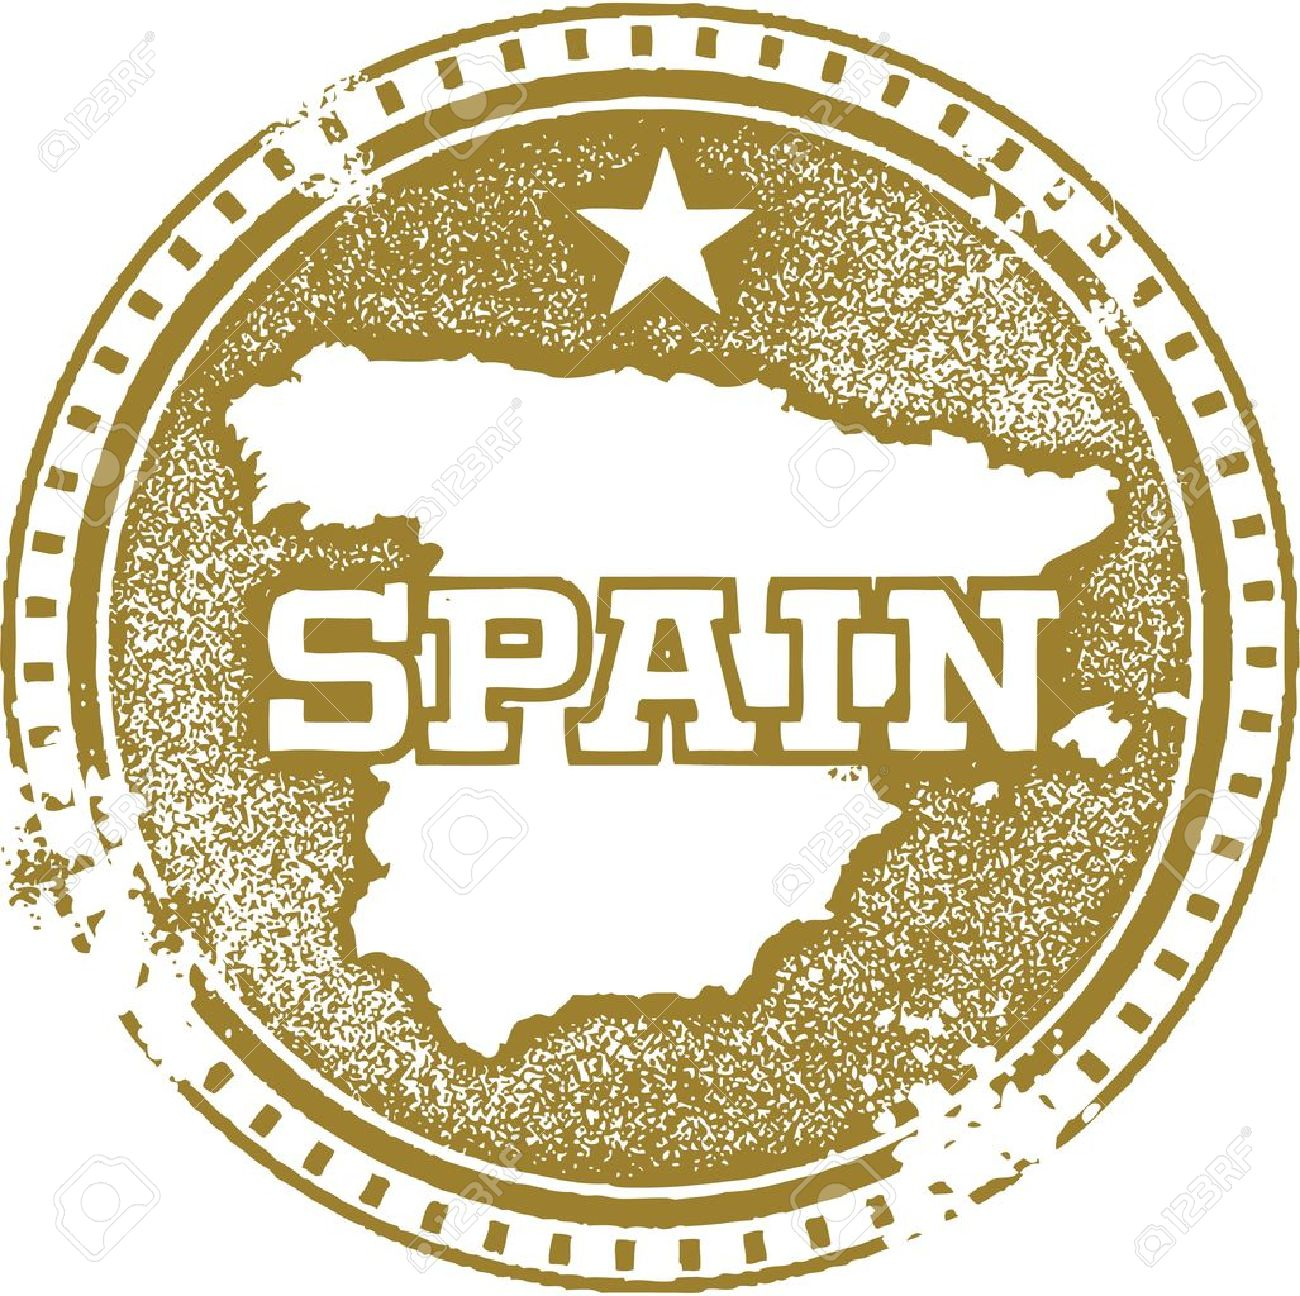 Vintage Spain Country Stamp Royalty Free Cliparts Vectors And